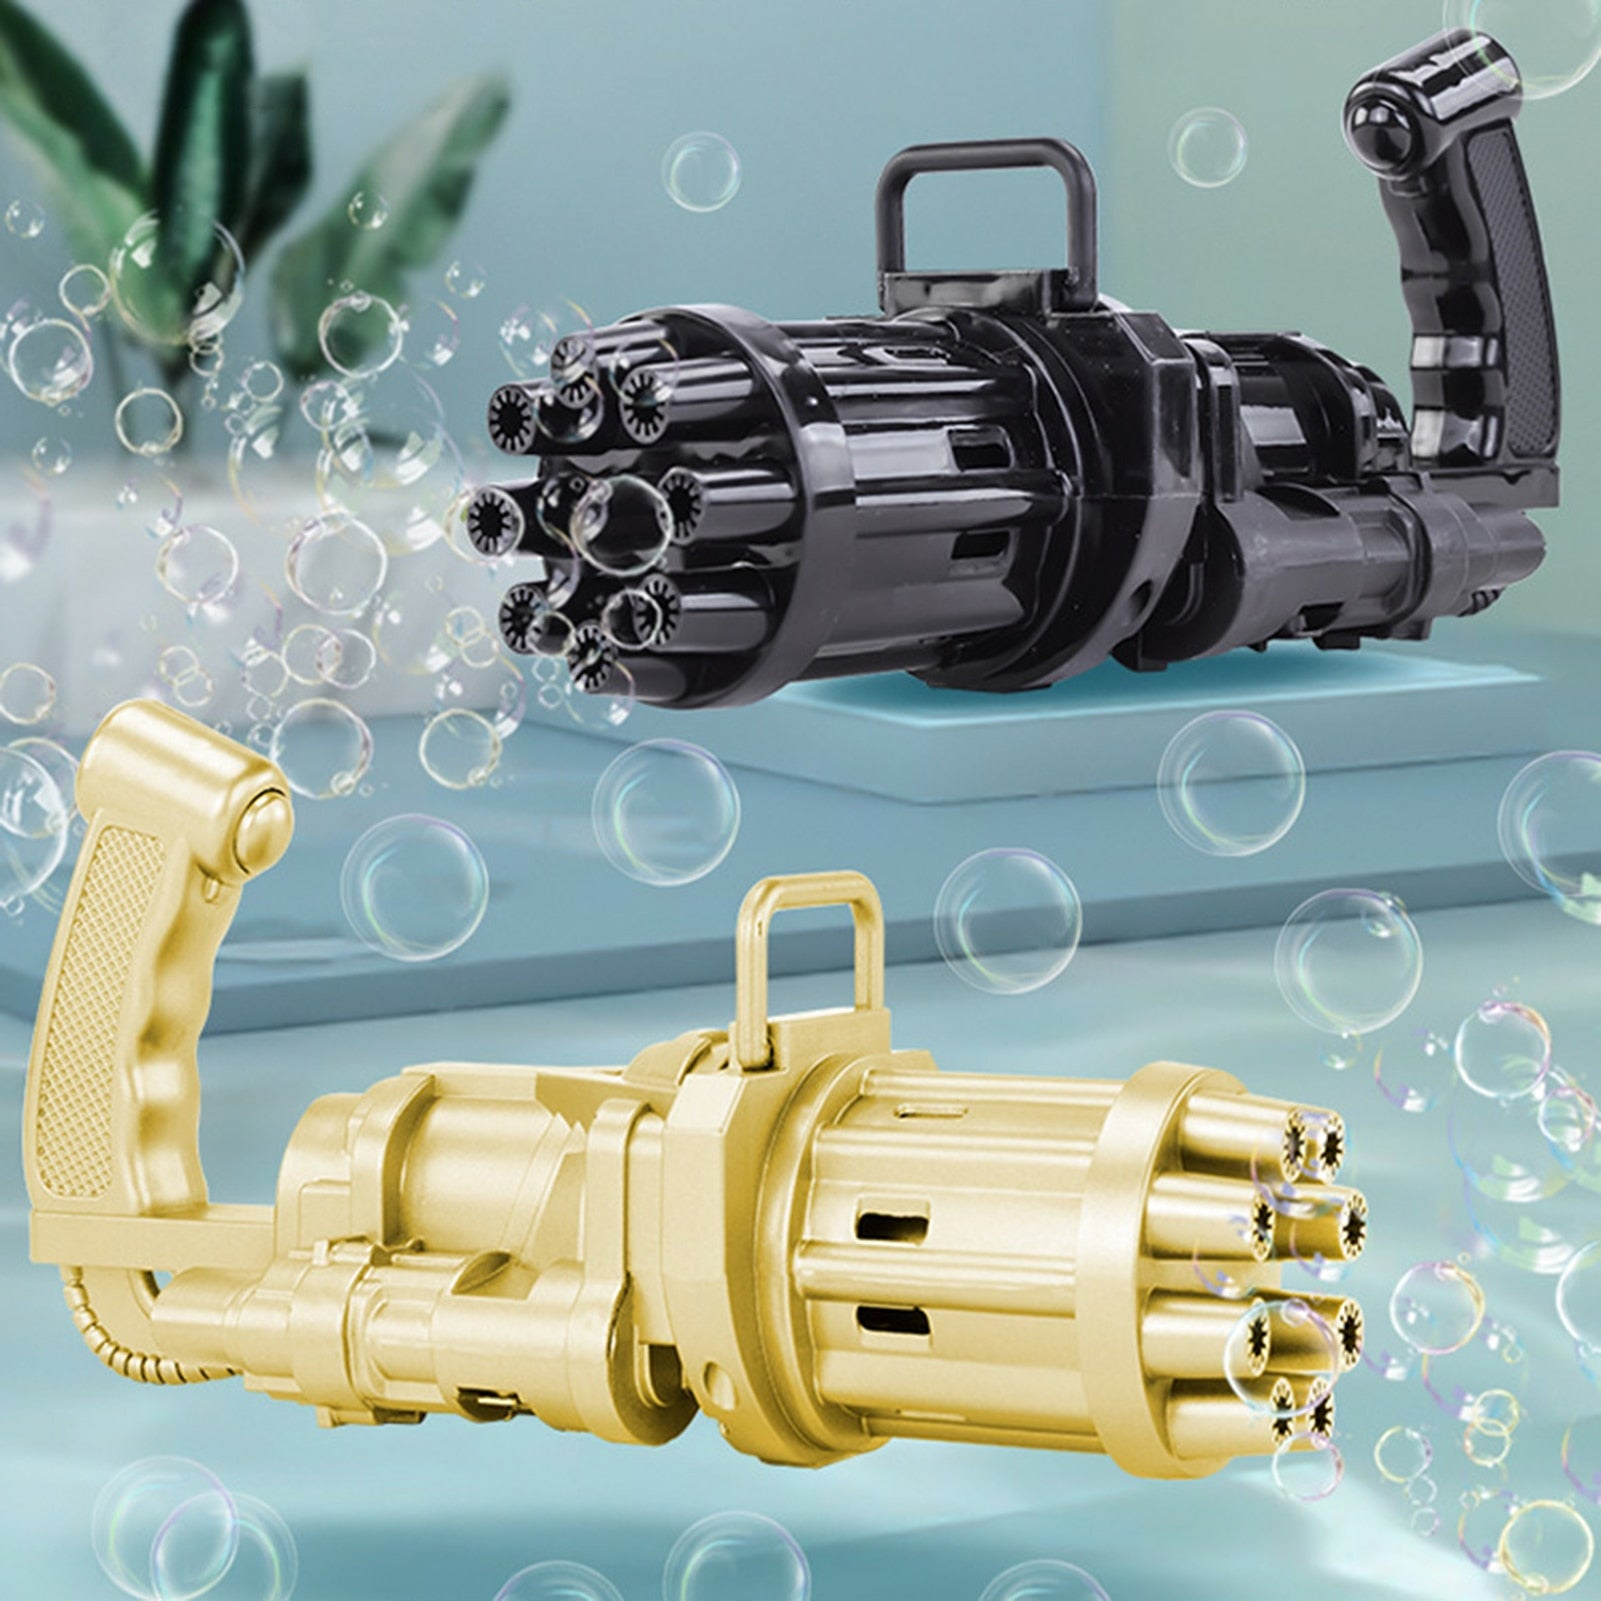 Joysz™ Gatling Bubble Gun